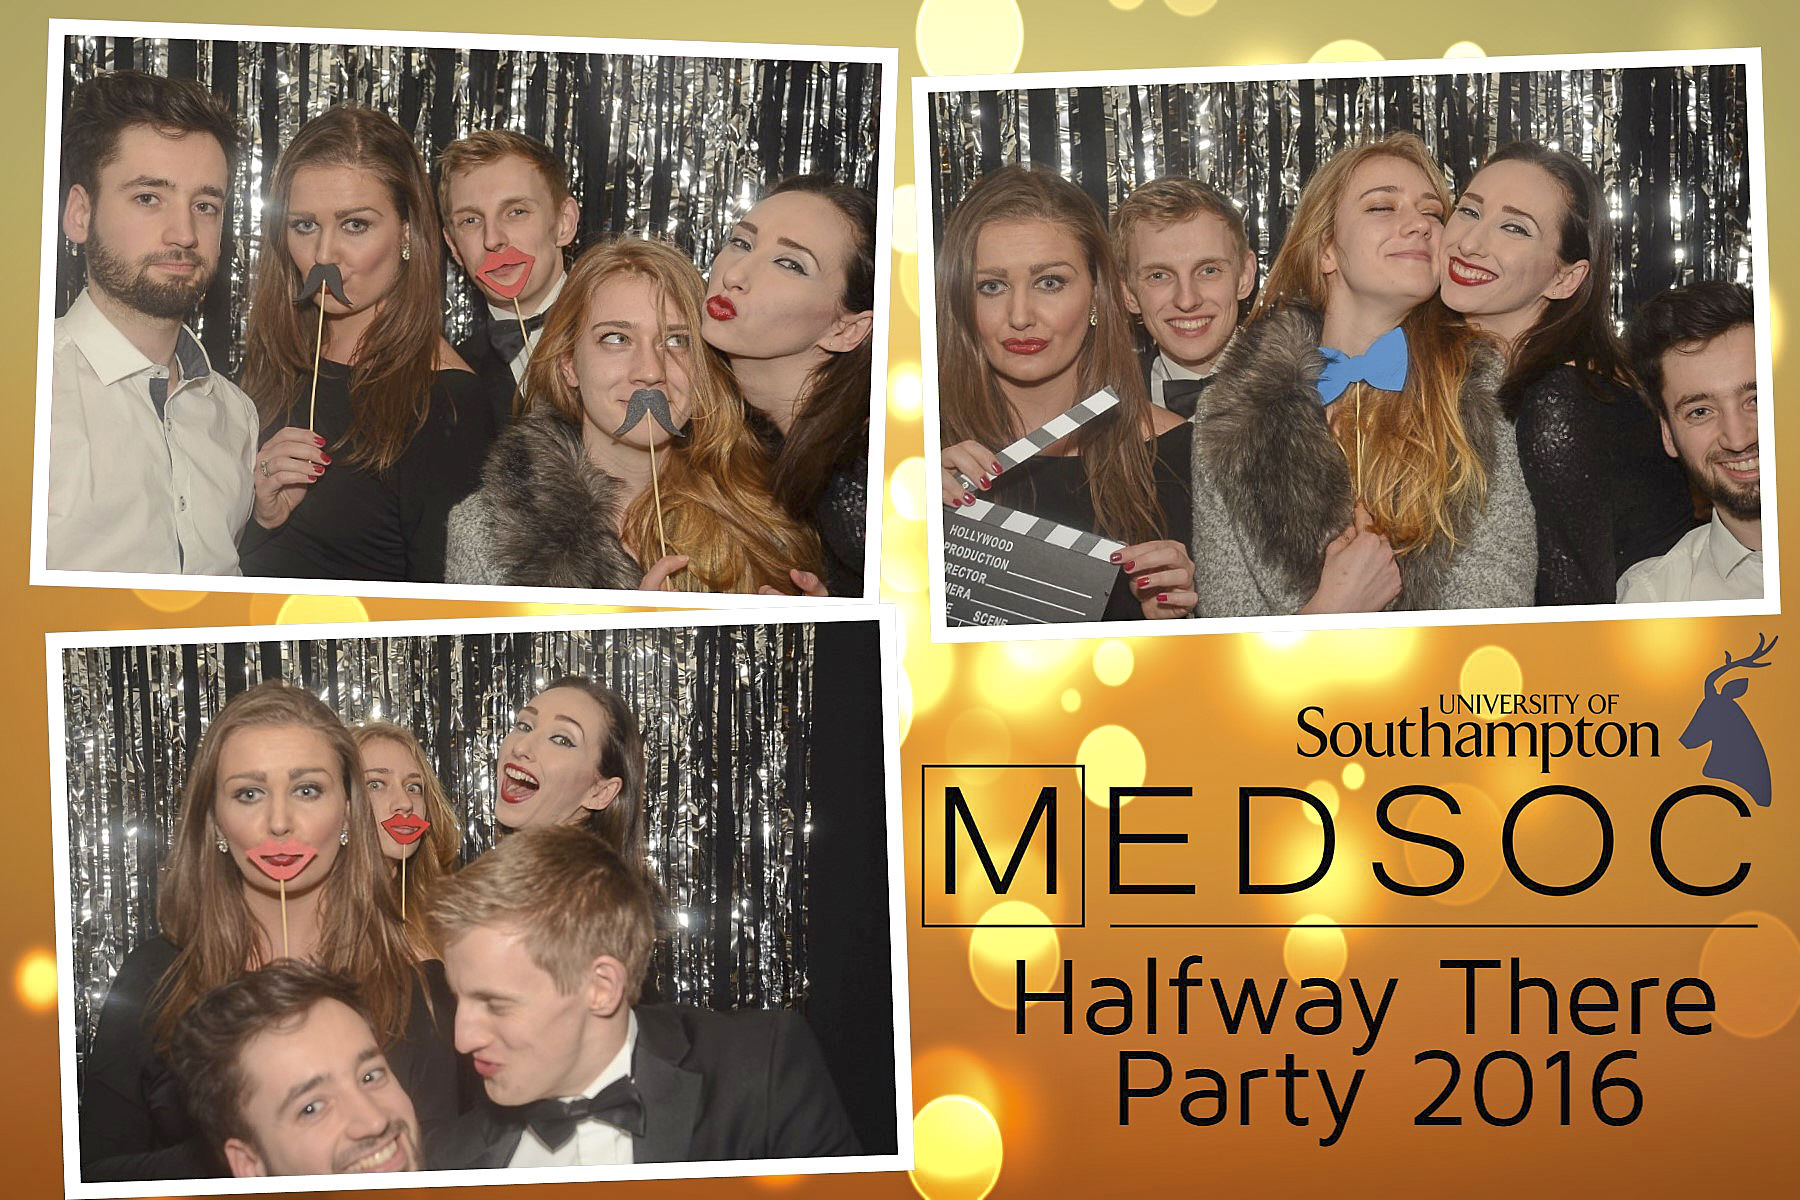 MedSoc Halfway There Party 2016 DS231313.jpg